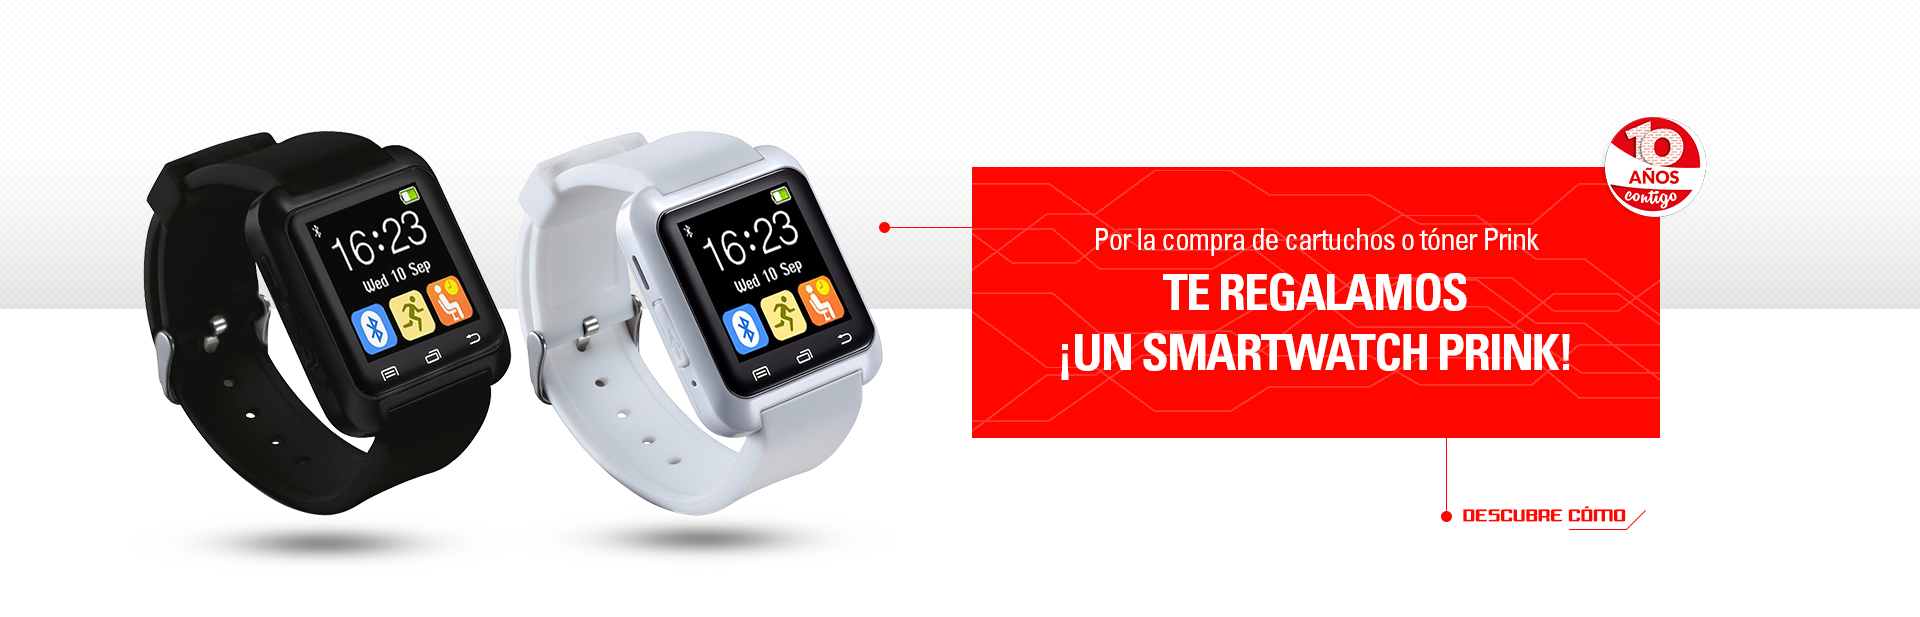 1920x617-BANNER_HOME_SMARTWATCH